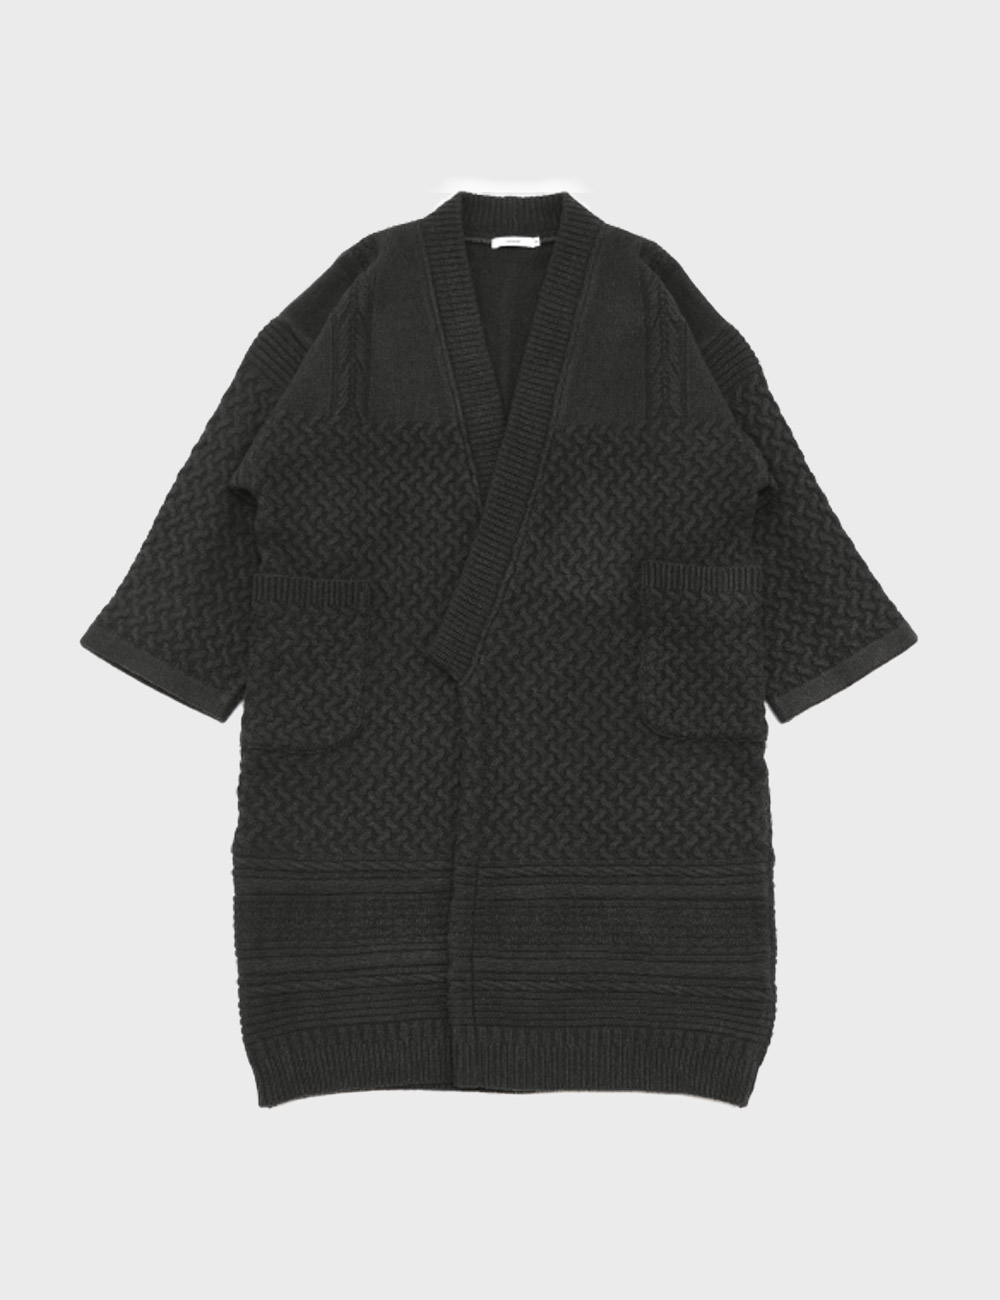 YASHIKI : TSUKIMI KNIT COAT (BLACK)